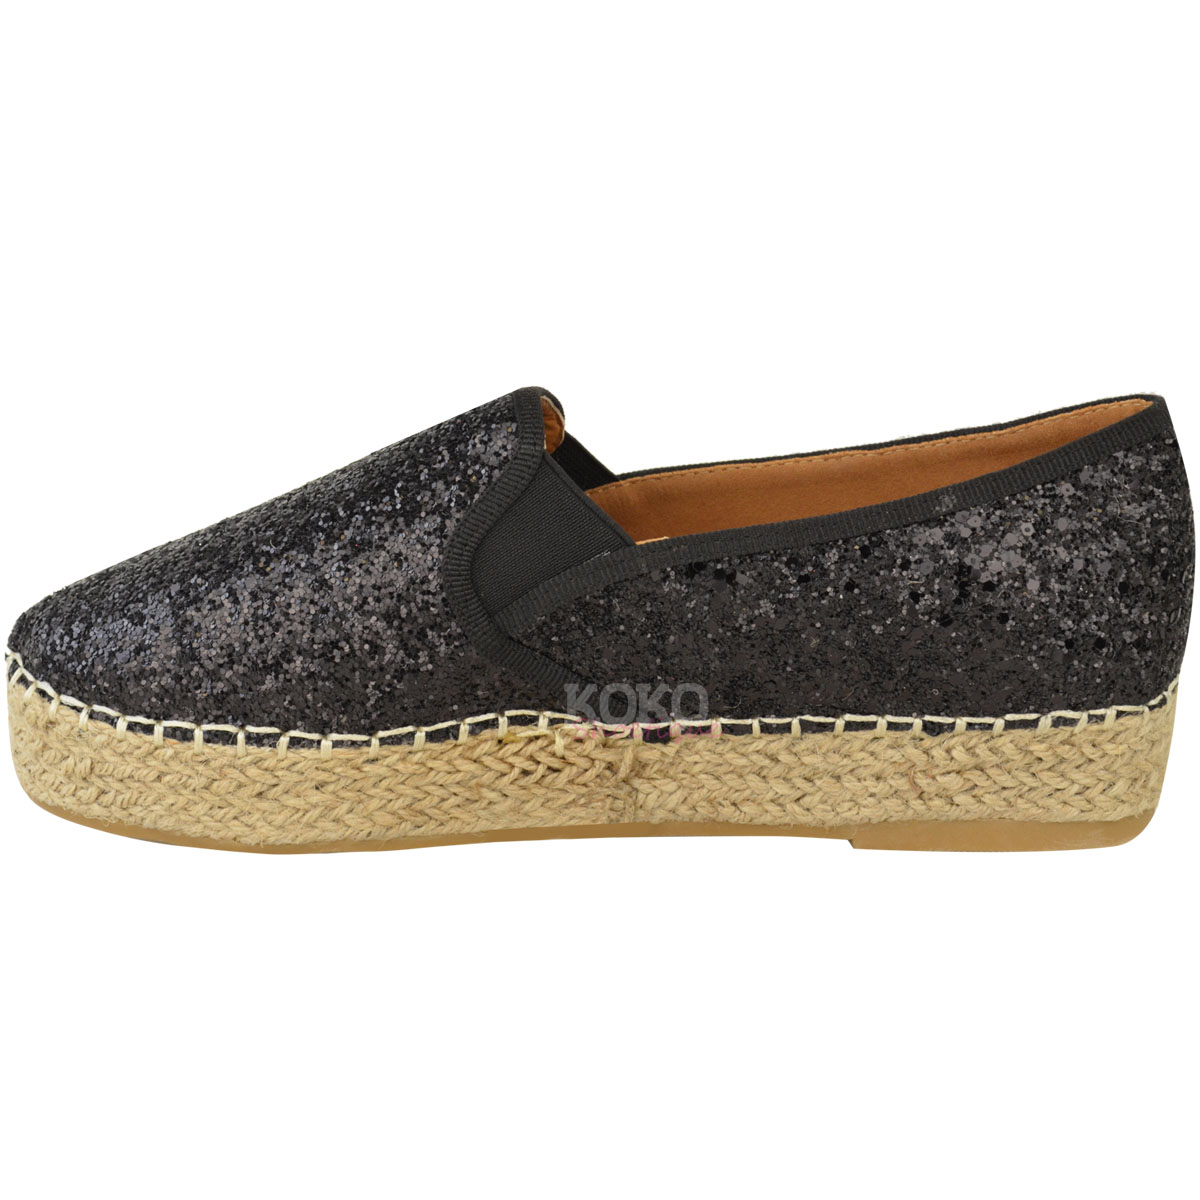 Find great deals on eBay for Flat Wedge Shoes in Flats and Oxfords for Women. Shop with confidence.